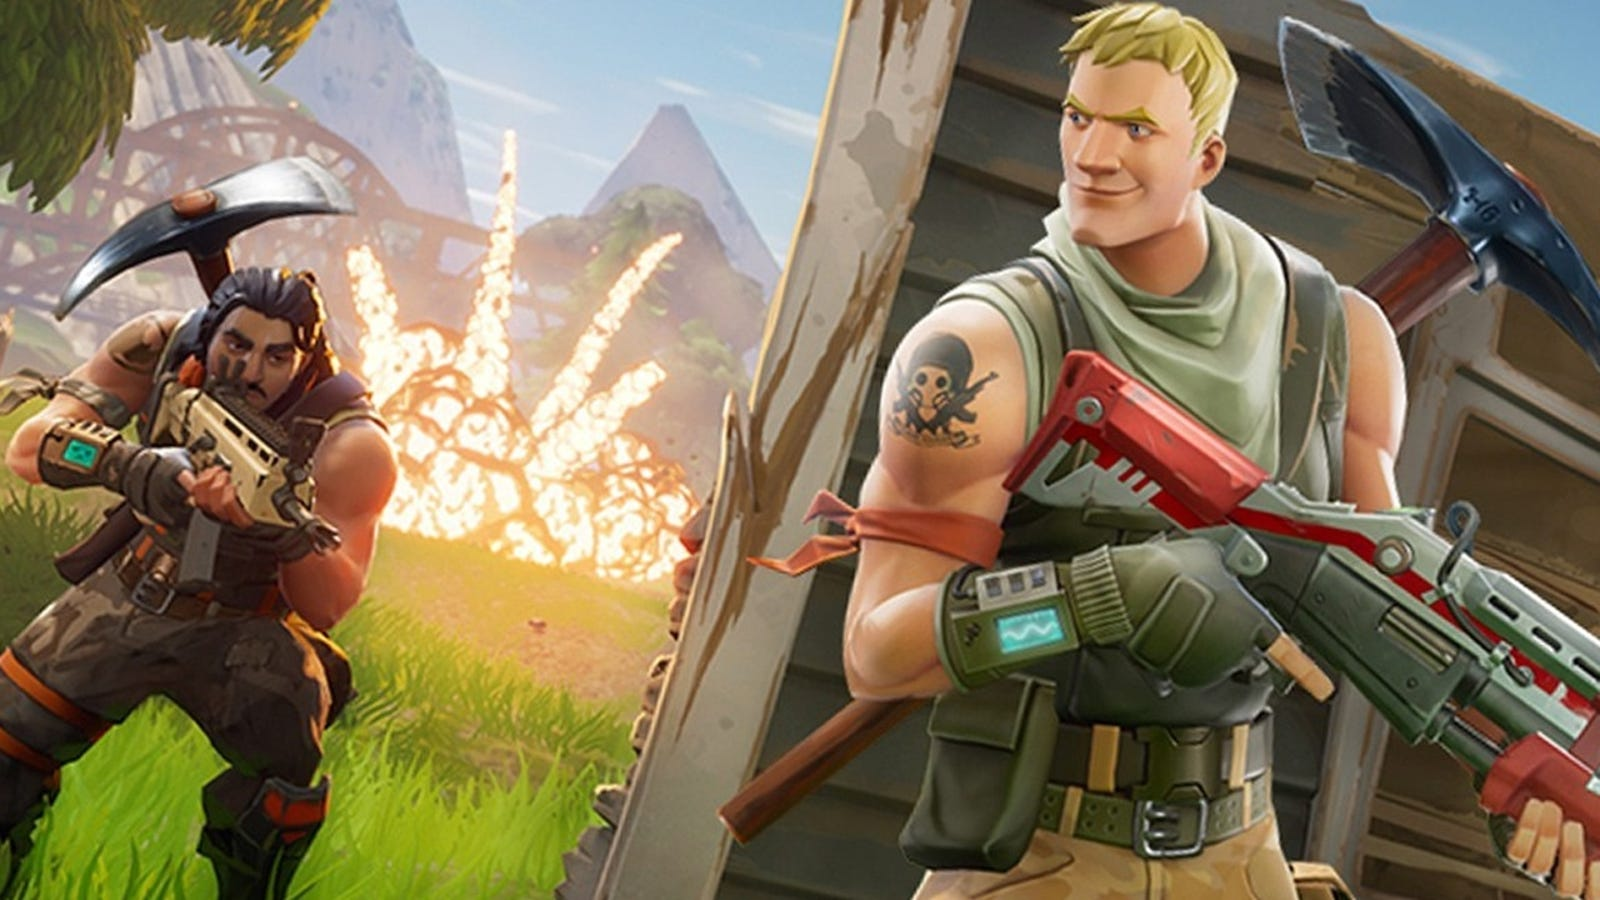 Fortnite Players Blame Stream Snipers For Update That Hides